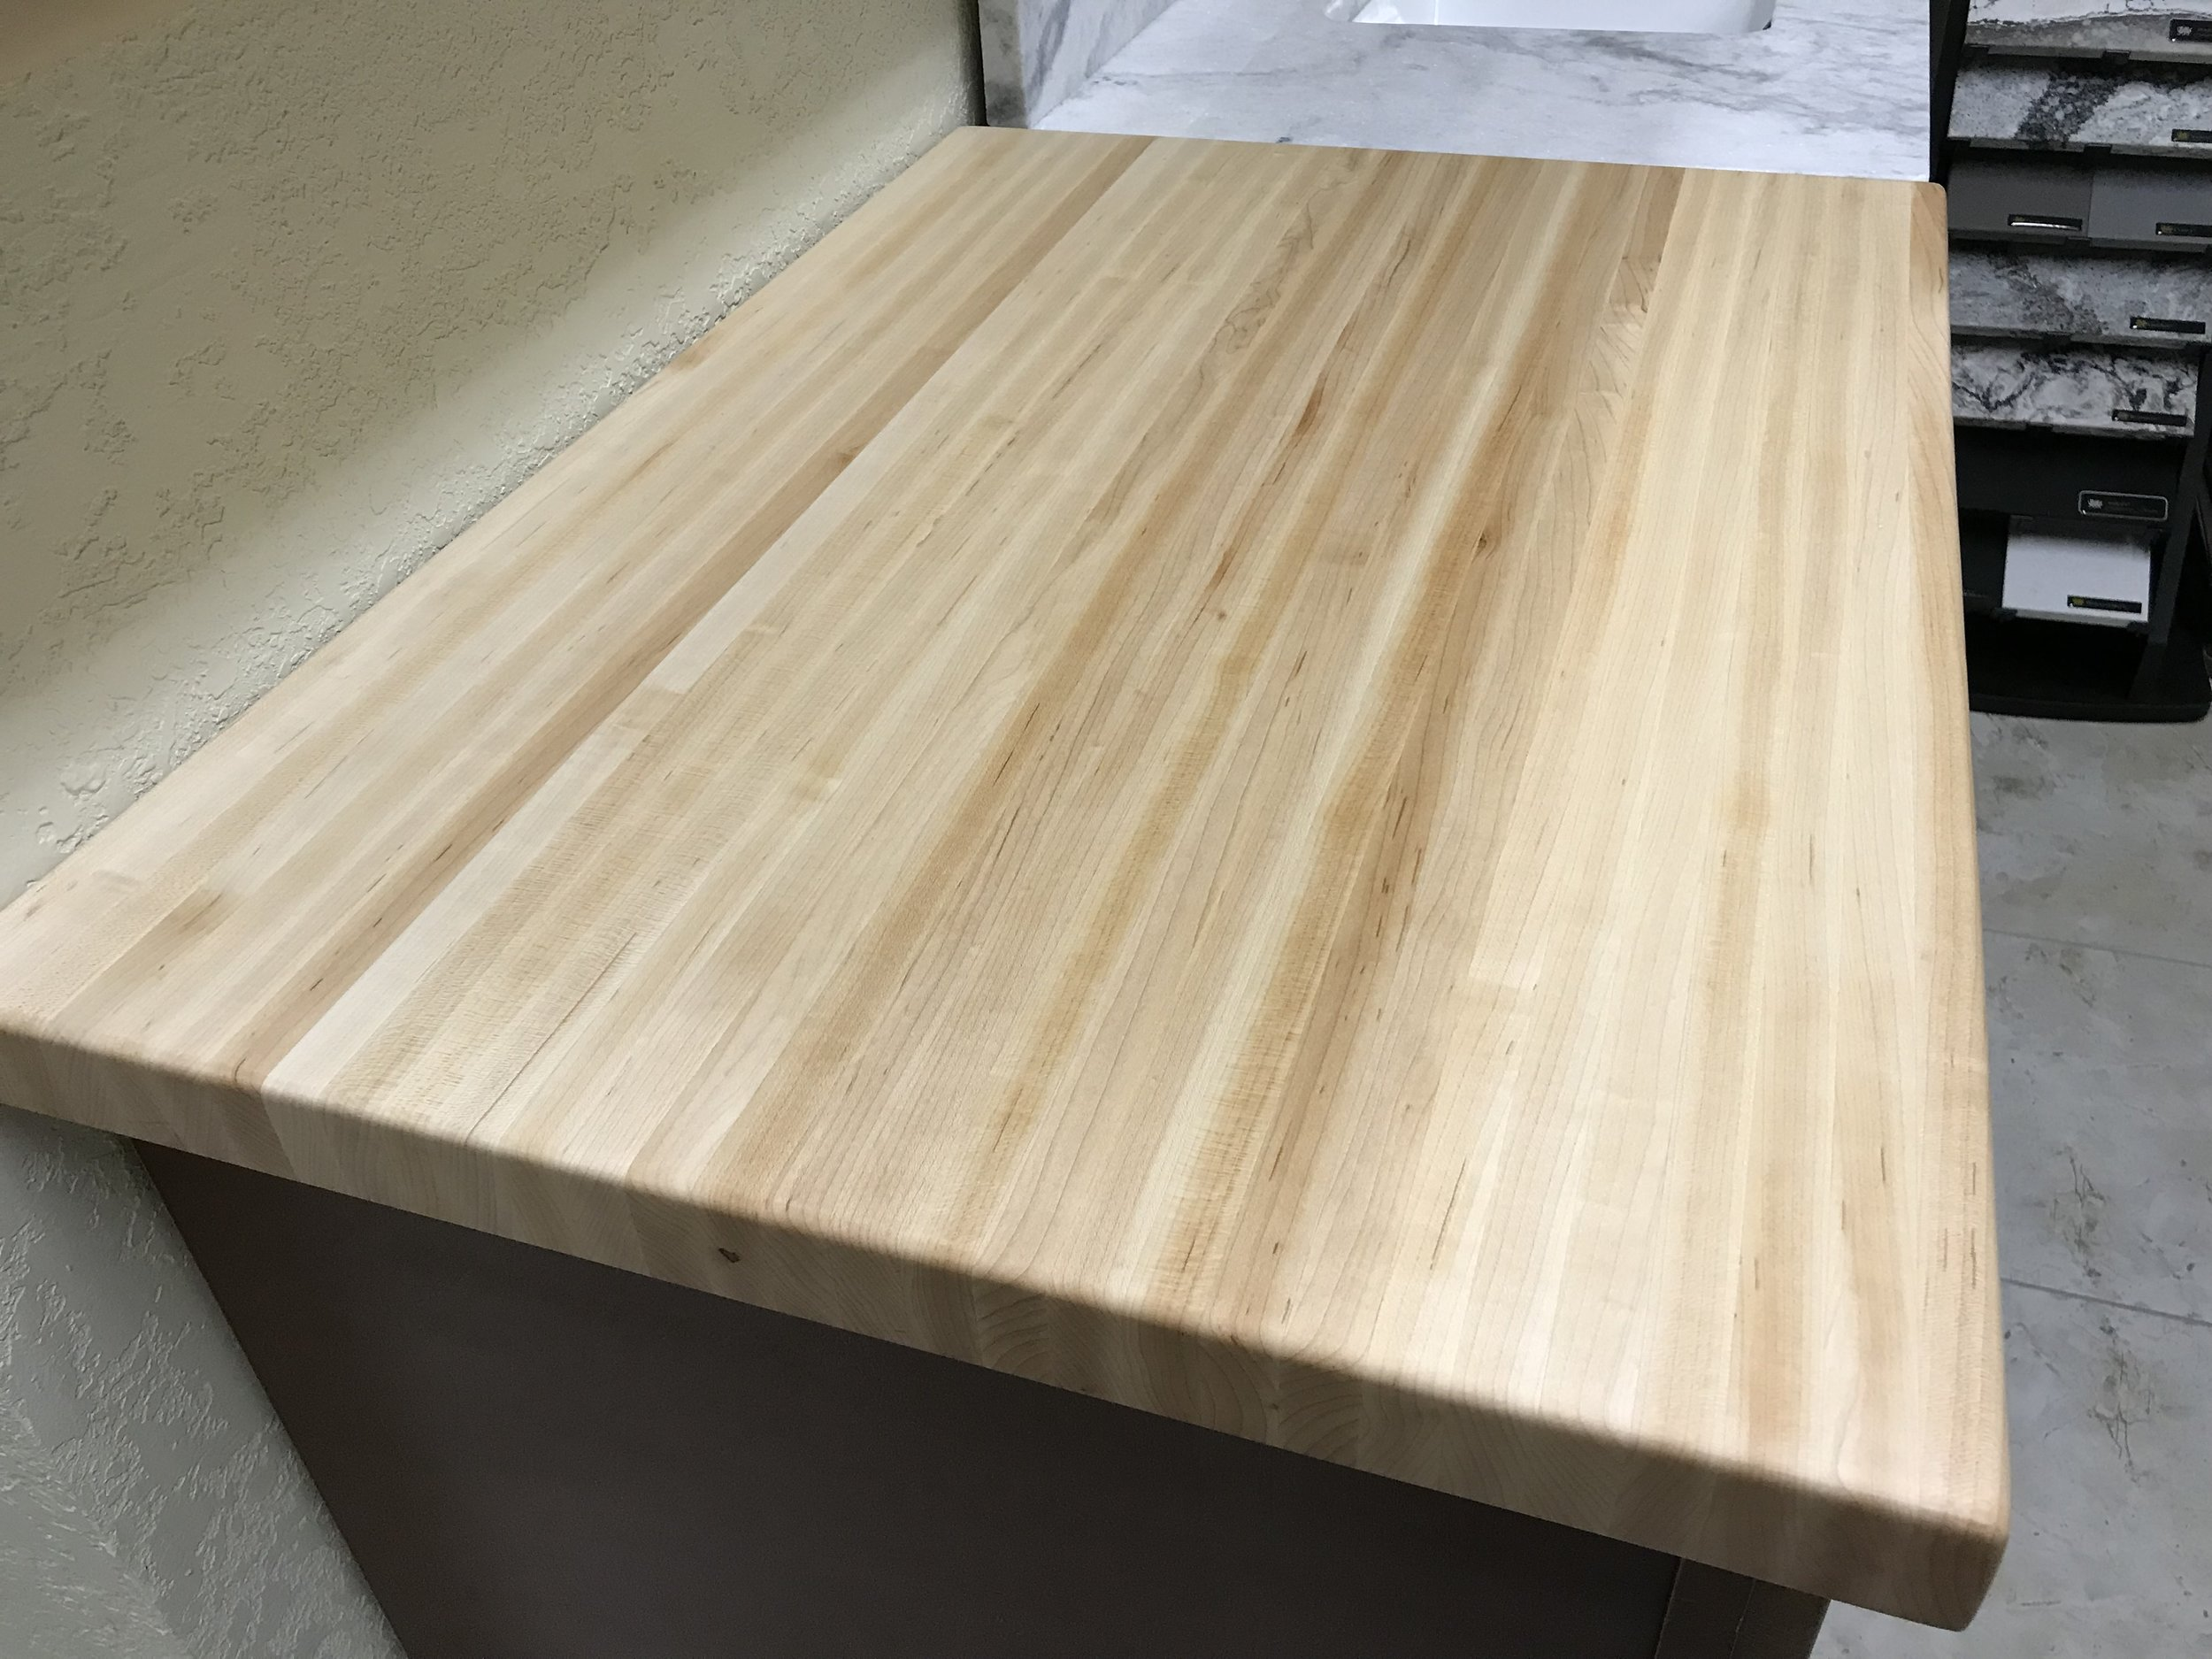 Hard Maple Butcher Block - Face-grain Hard Maple with a coat of clear, food grade mineral oil brings out the natural beauty of this light, honey-colored wood, giving your kitchen countertop or island an beautiful, natural look and feel. Easy to clean, easy to maintain and ages well with decades of use.